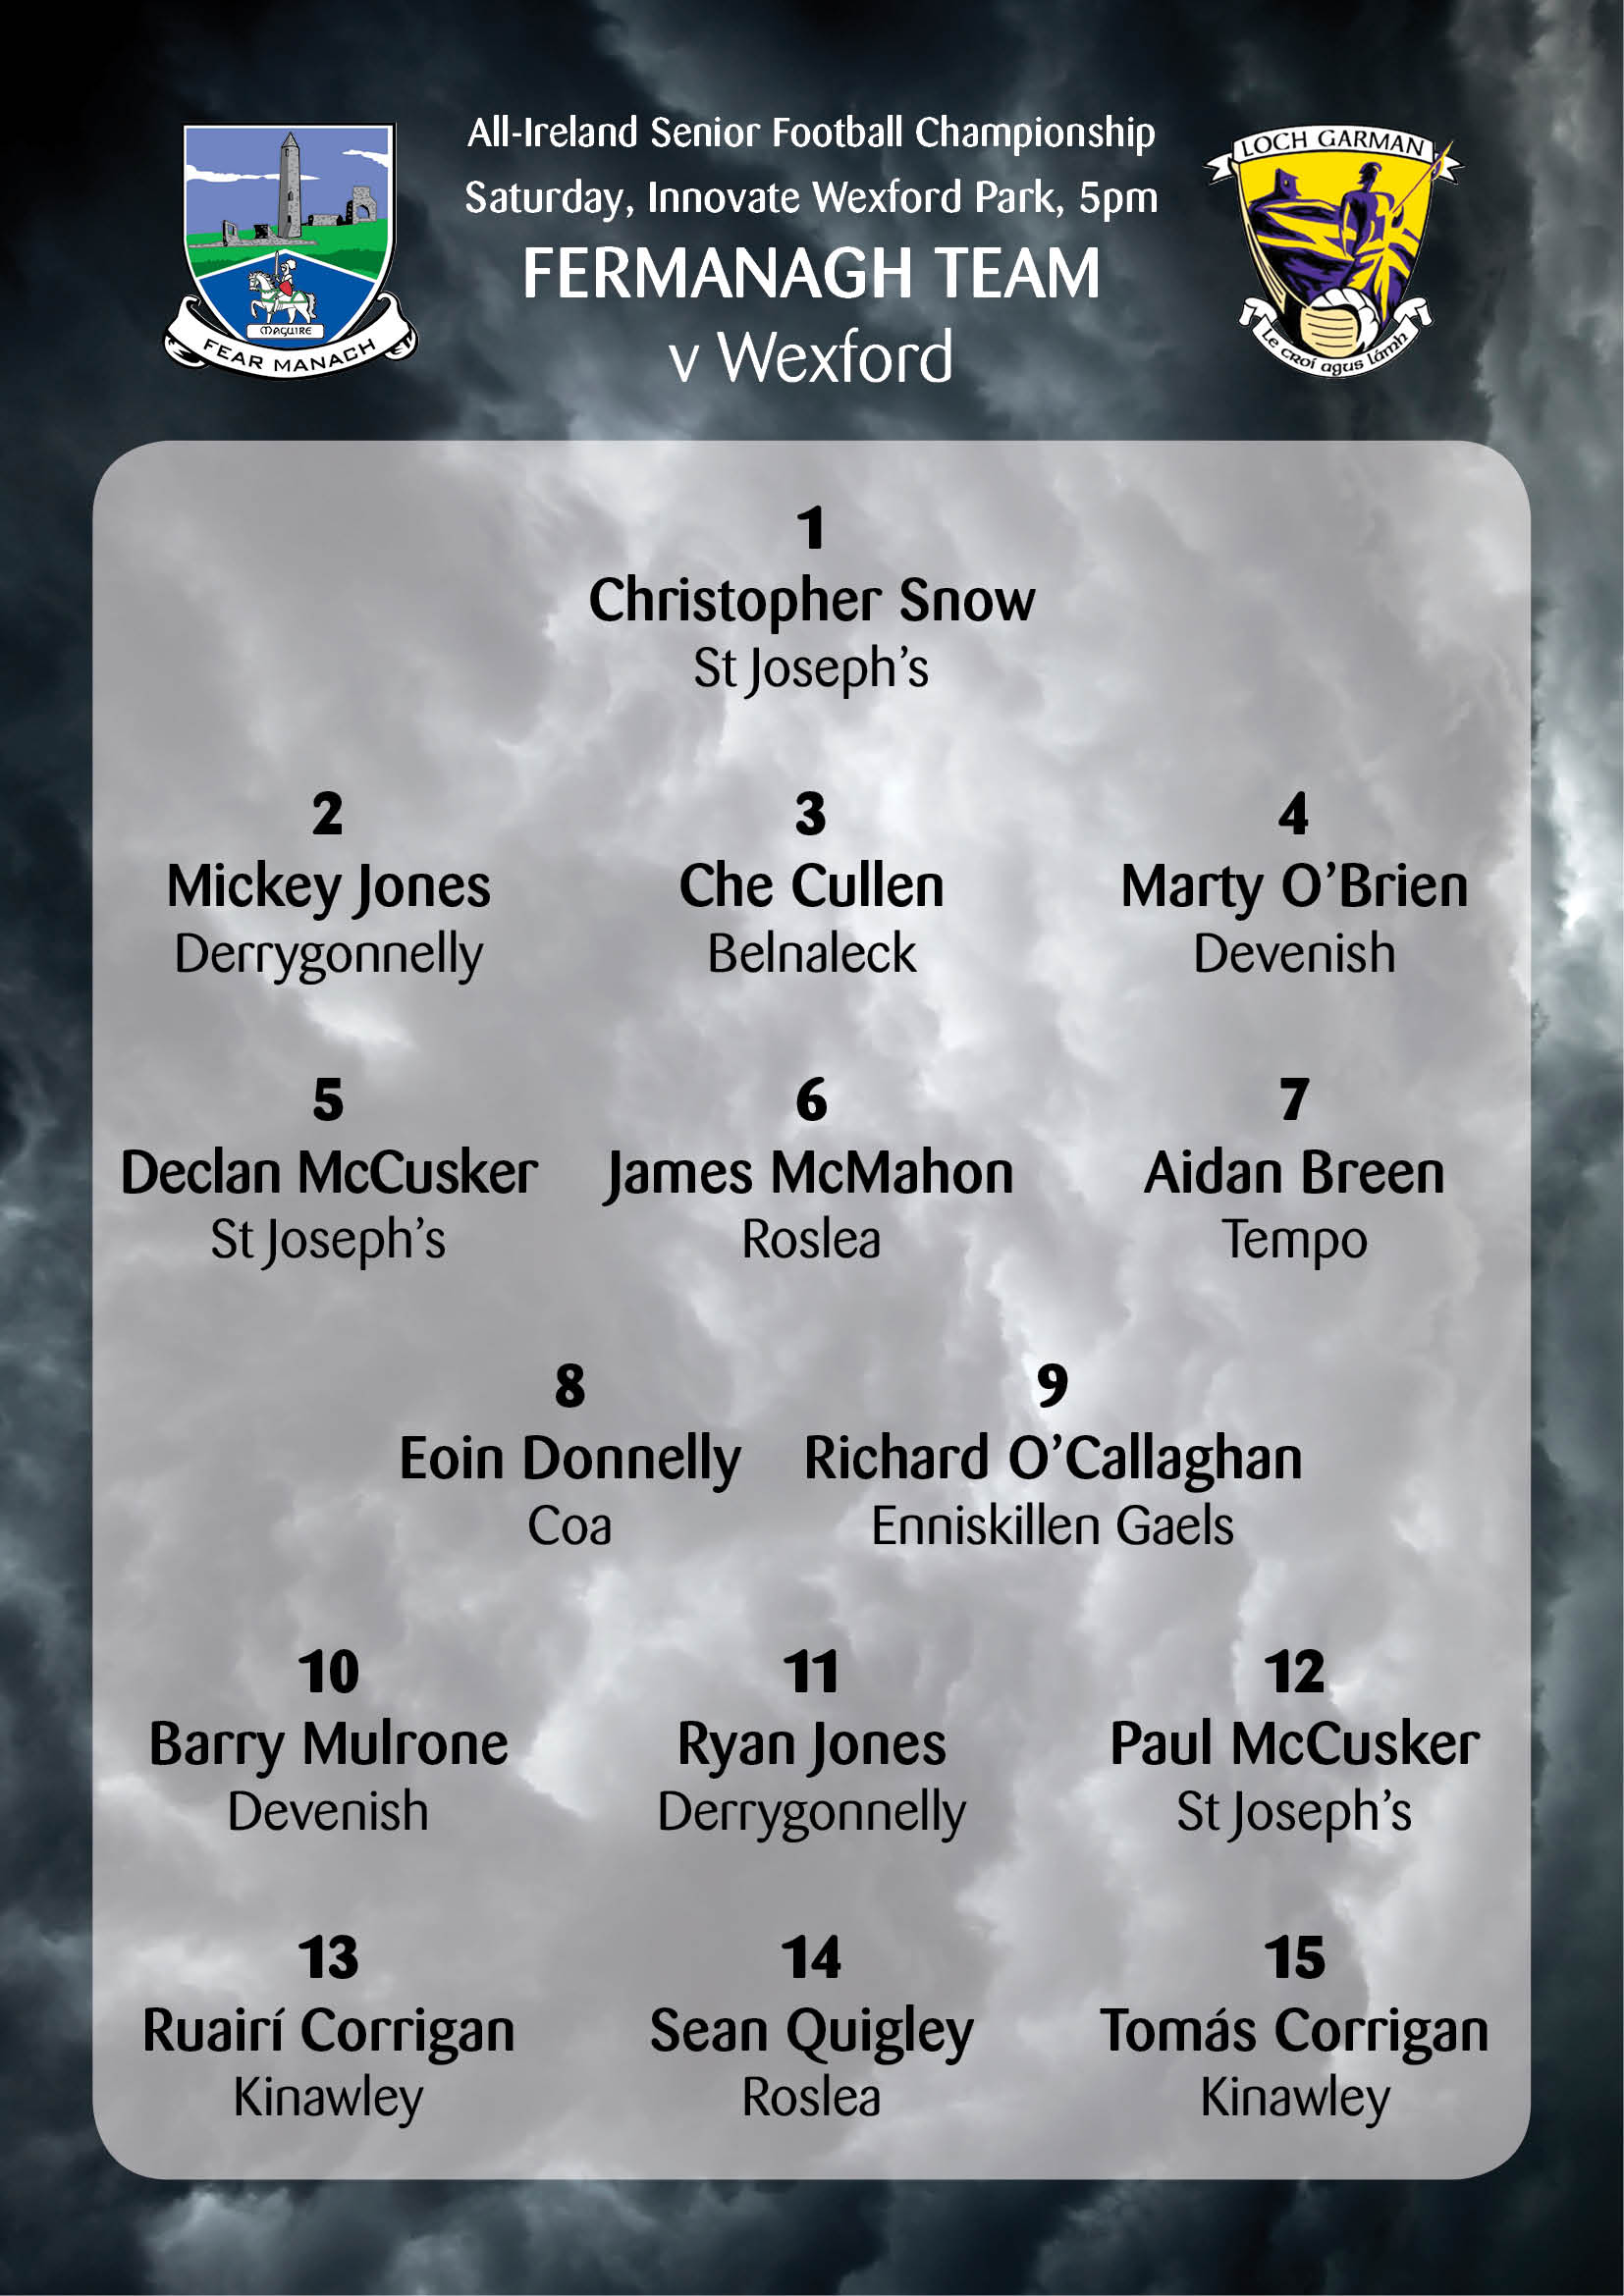 Fermanagh TEAM named